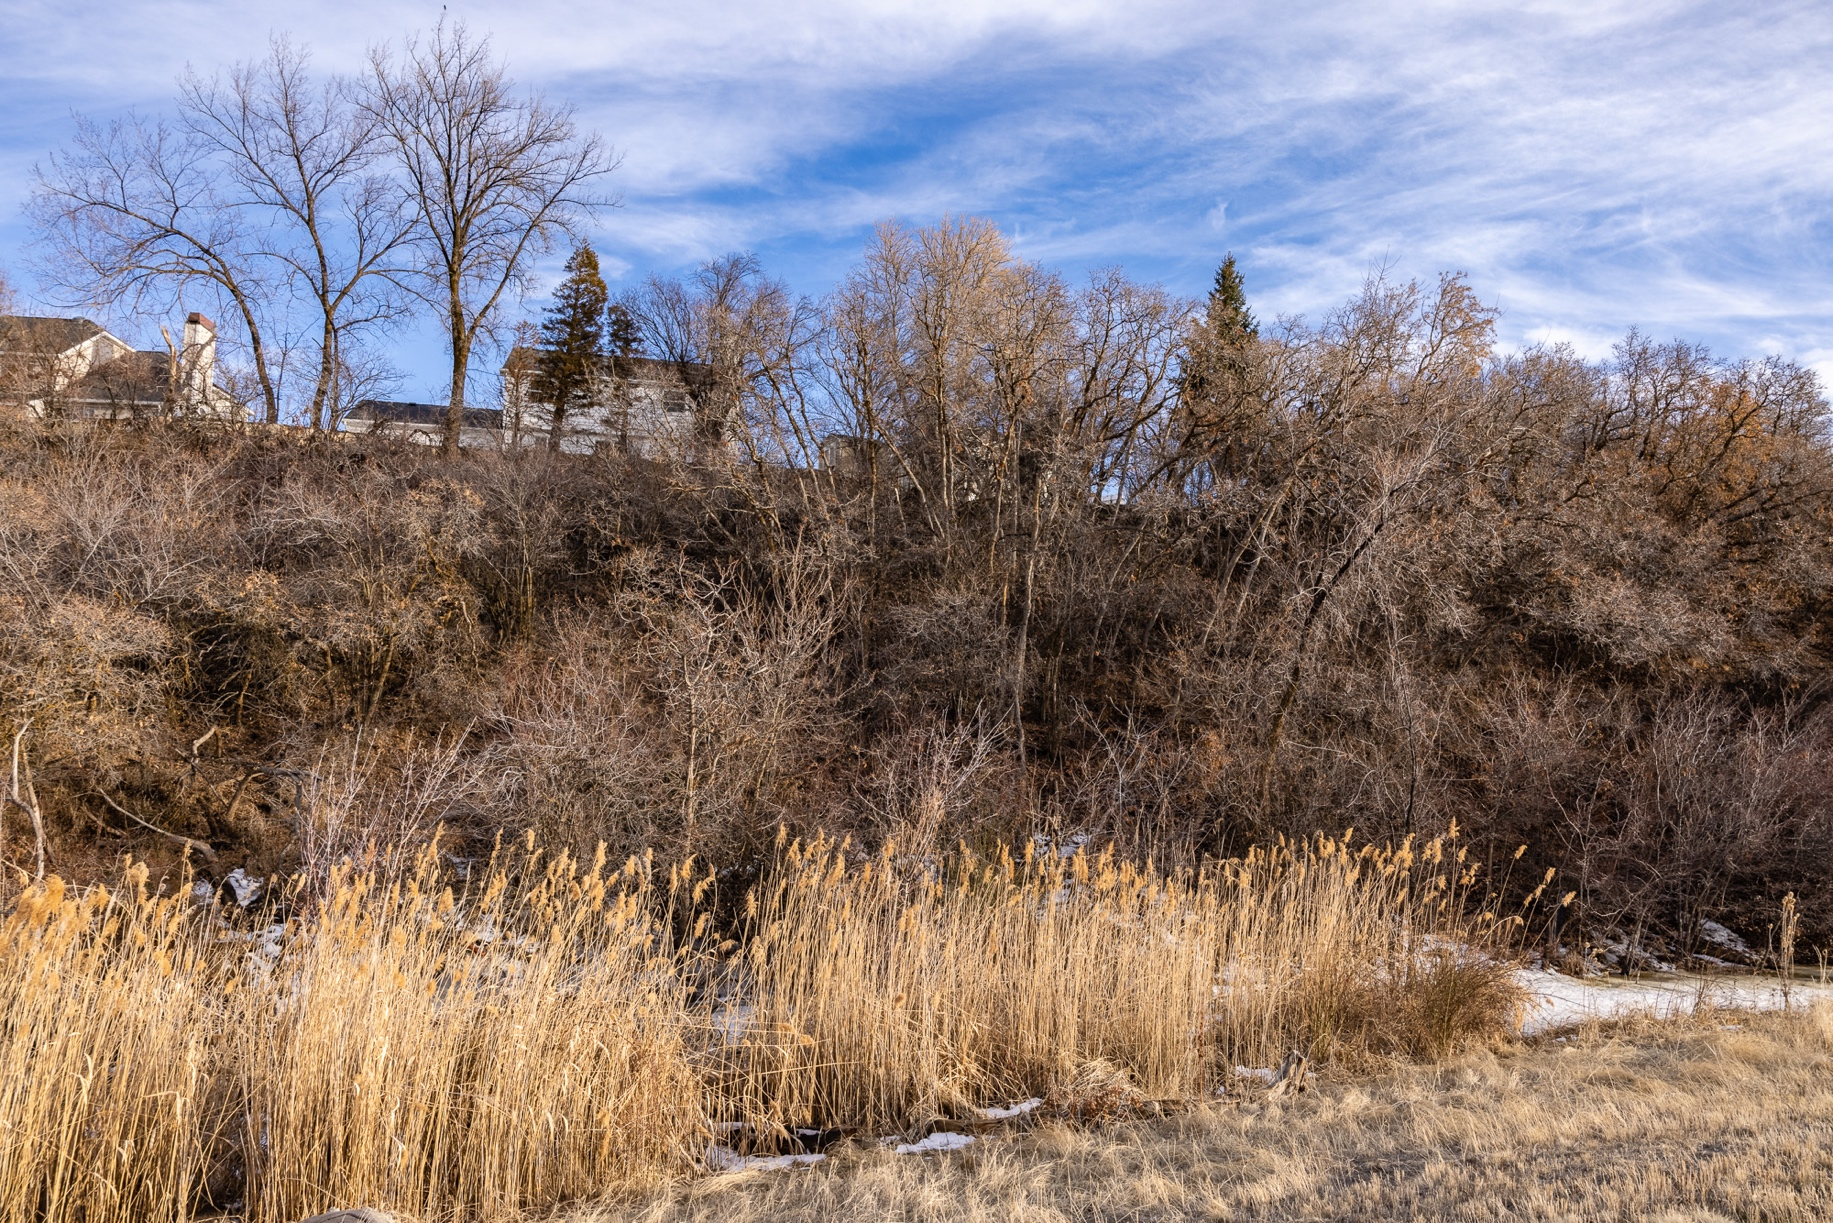 A man spotted a human skull at the bottom of this hillside near the border of Farmington and Fruit Heights in 2015.